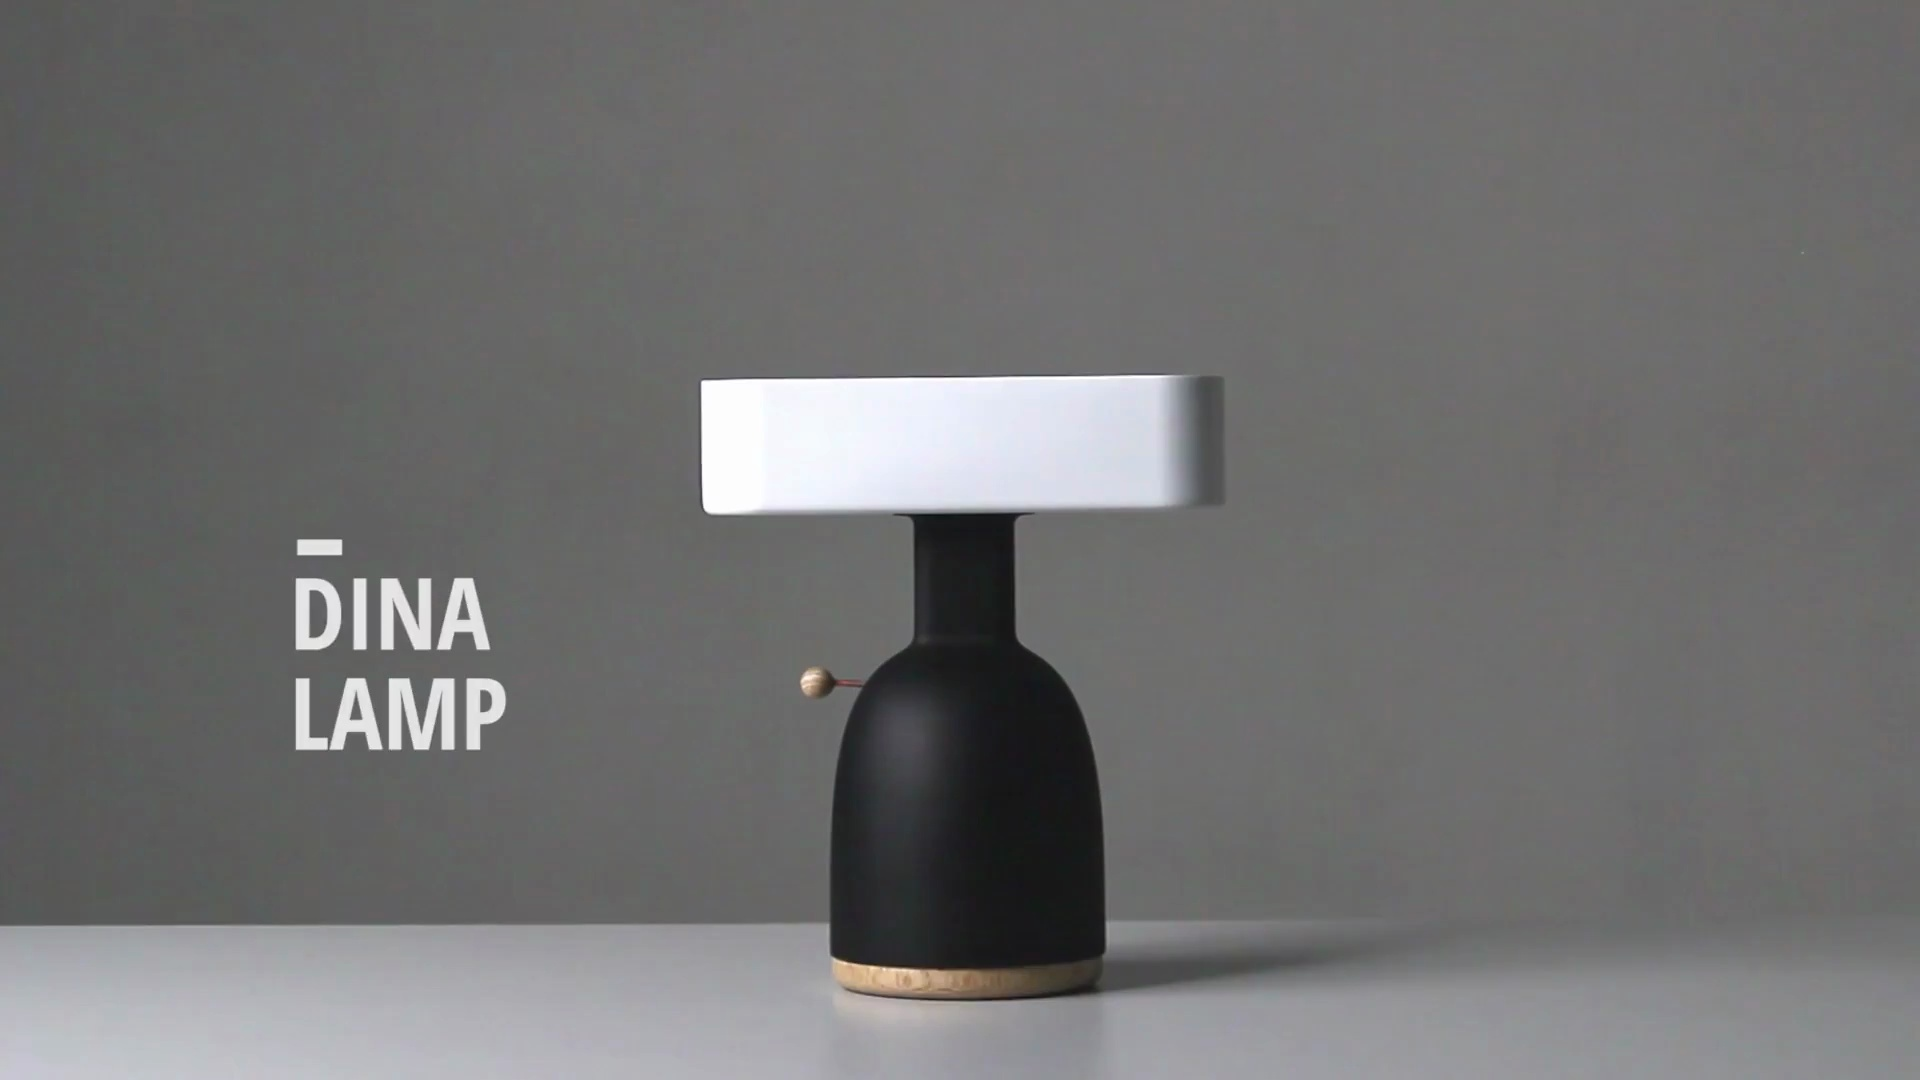 DINA CoinLamp Lamp with moneybox function